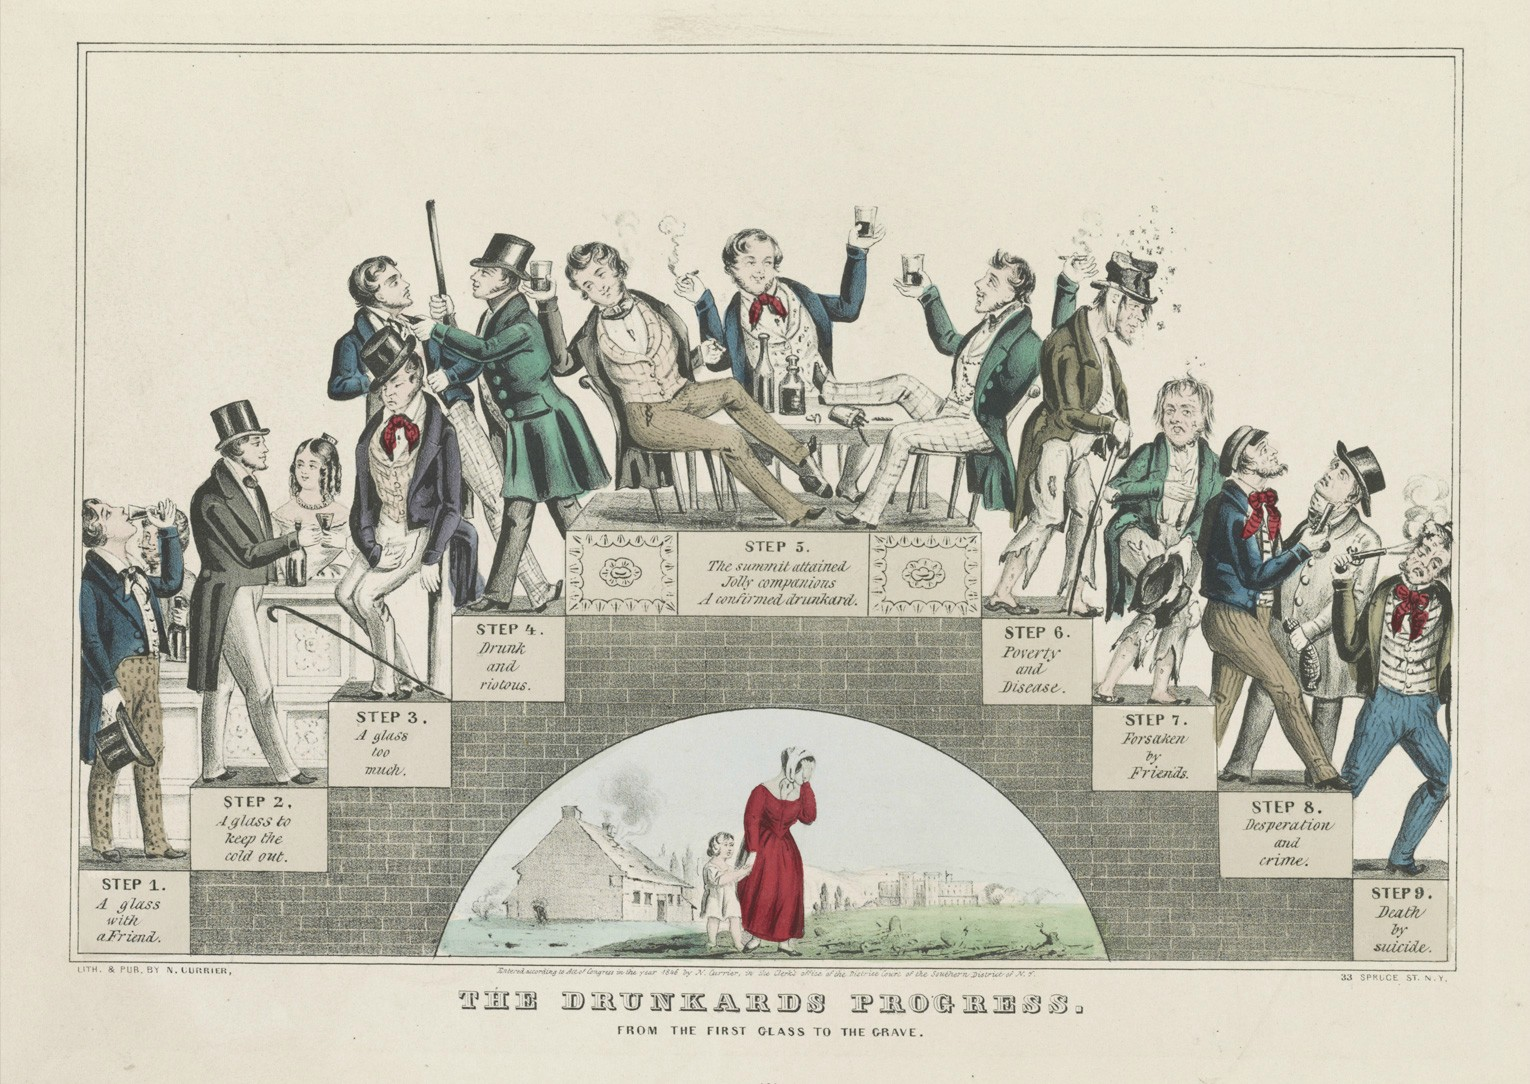 File:The Drunkard's Progress - Color.jpg - Wikipedia, the free ...